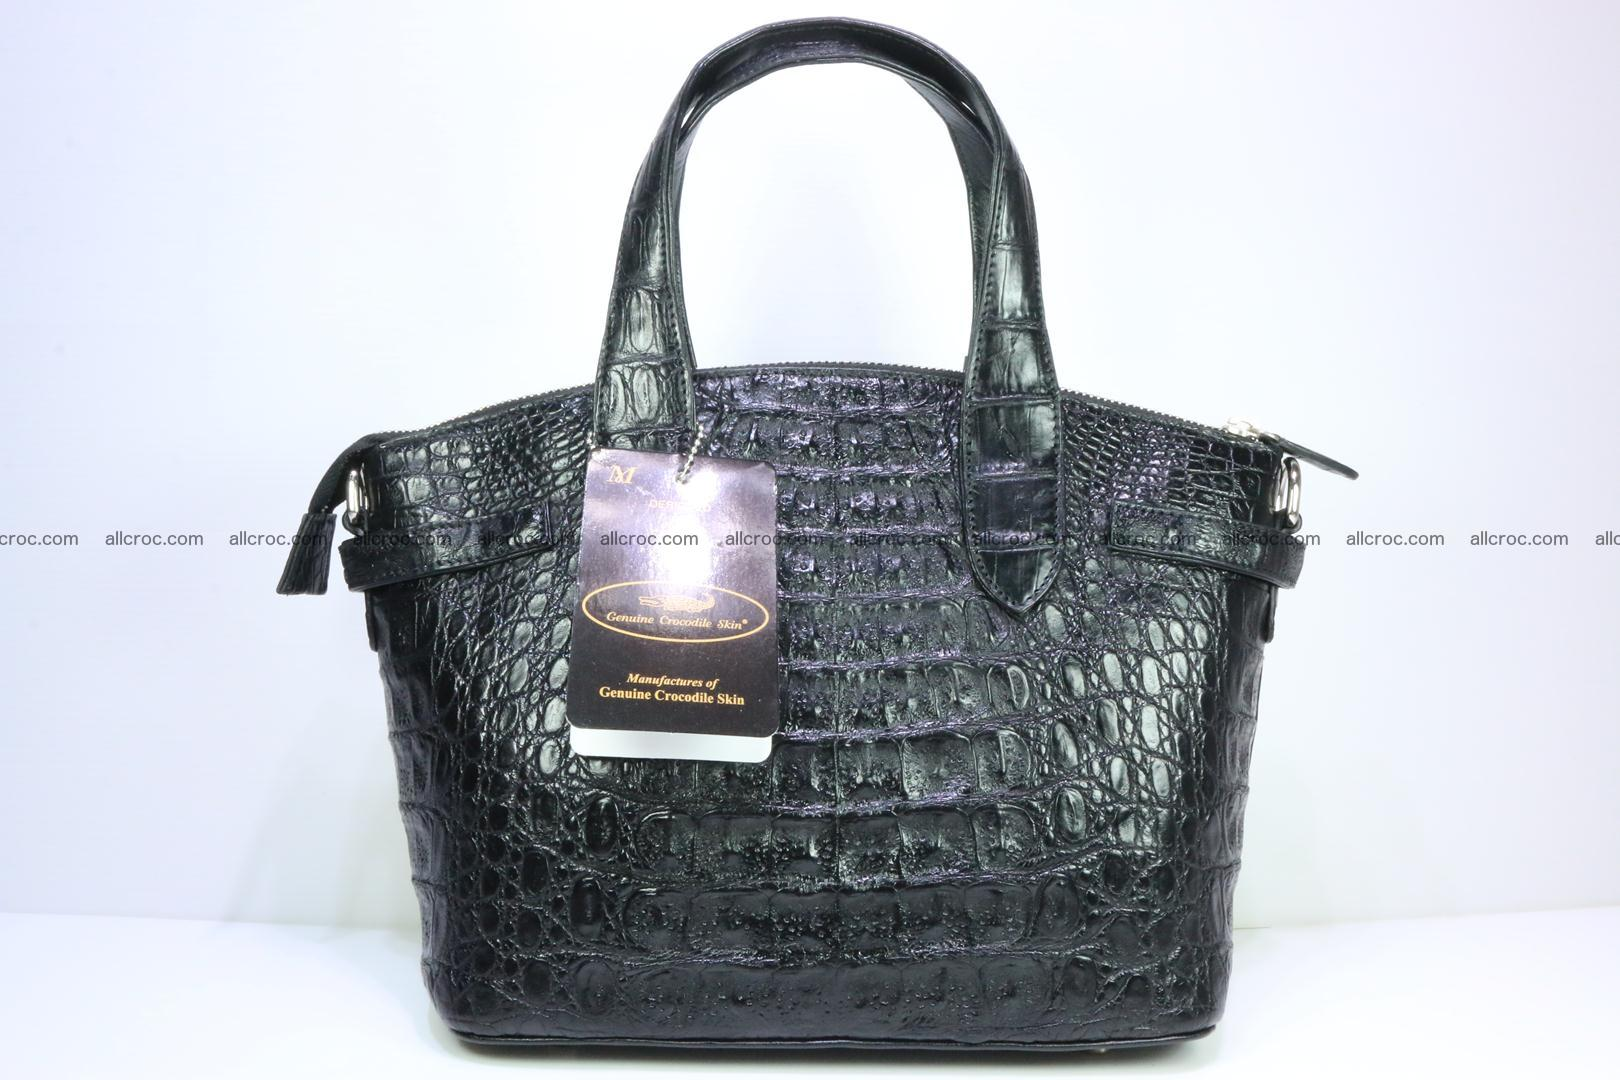 Genuine crocodile handbag for ladies 051 Foto 5